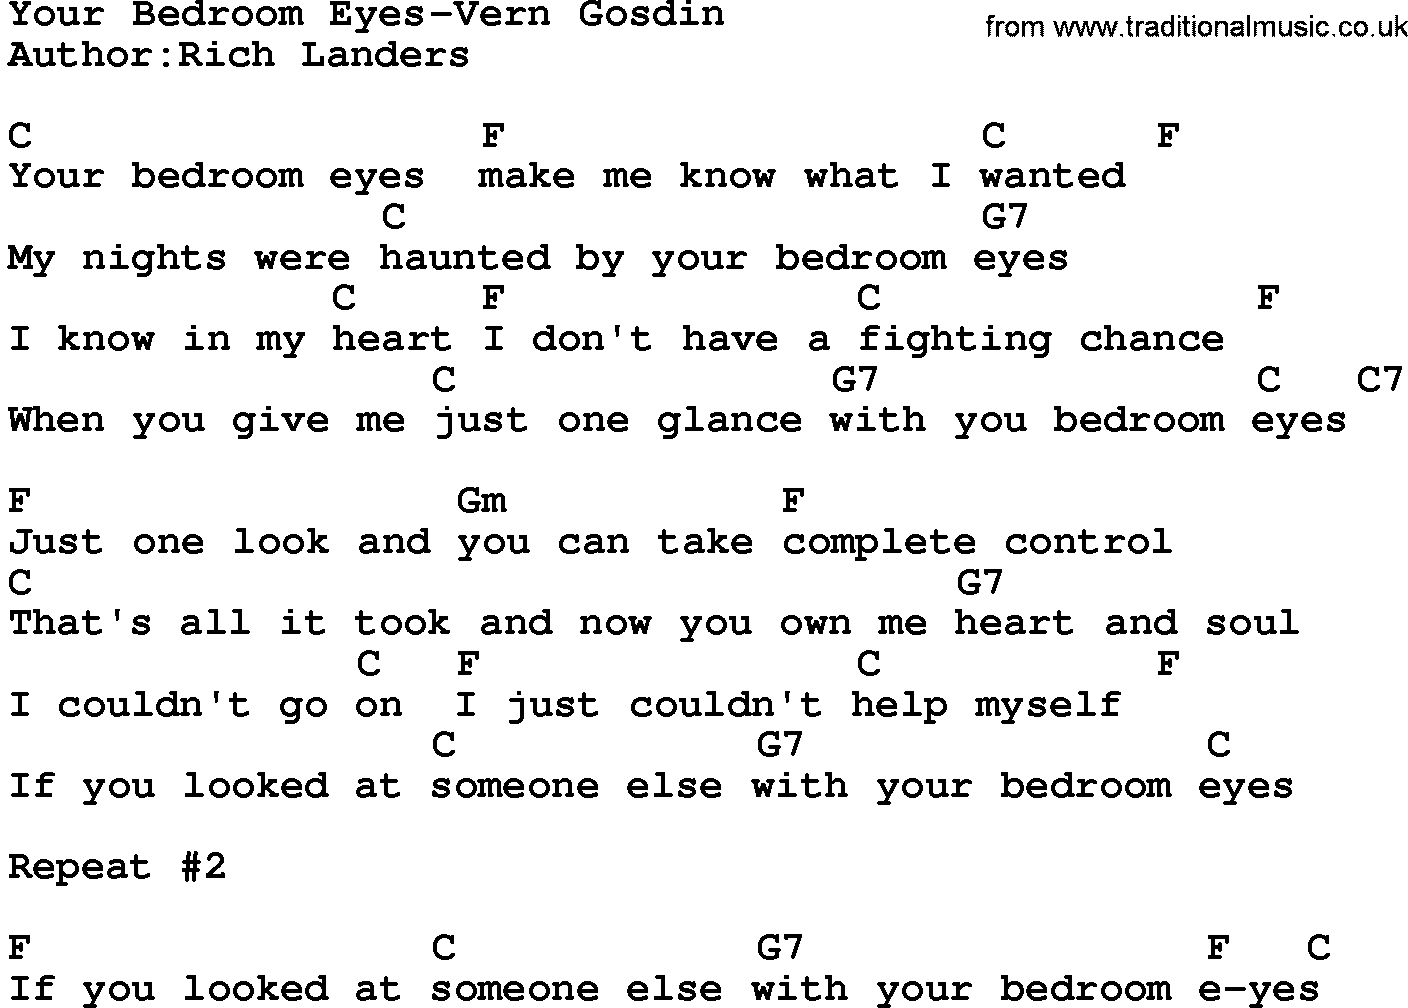 country music your bedroom eyes vern gosdin lyrics and chords